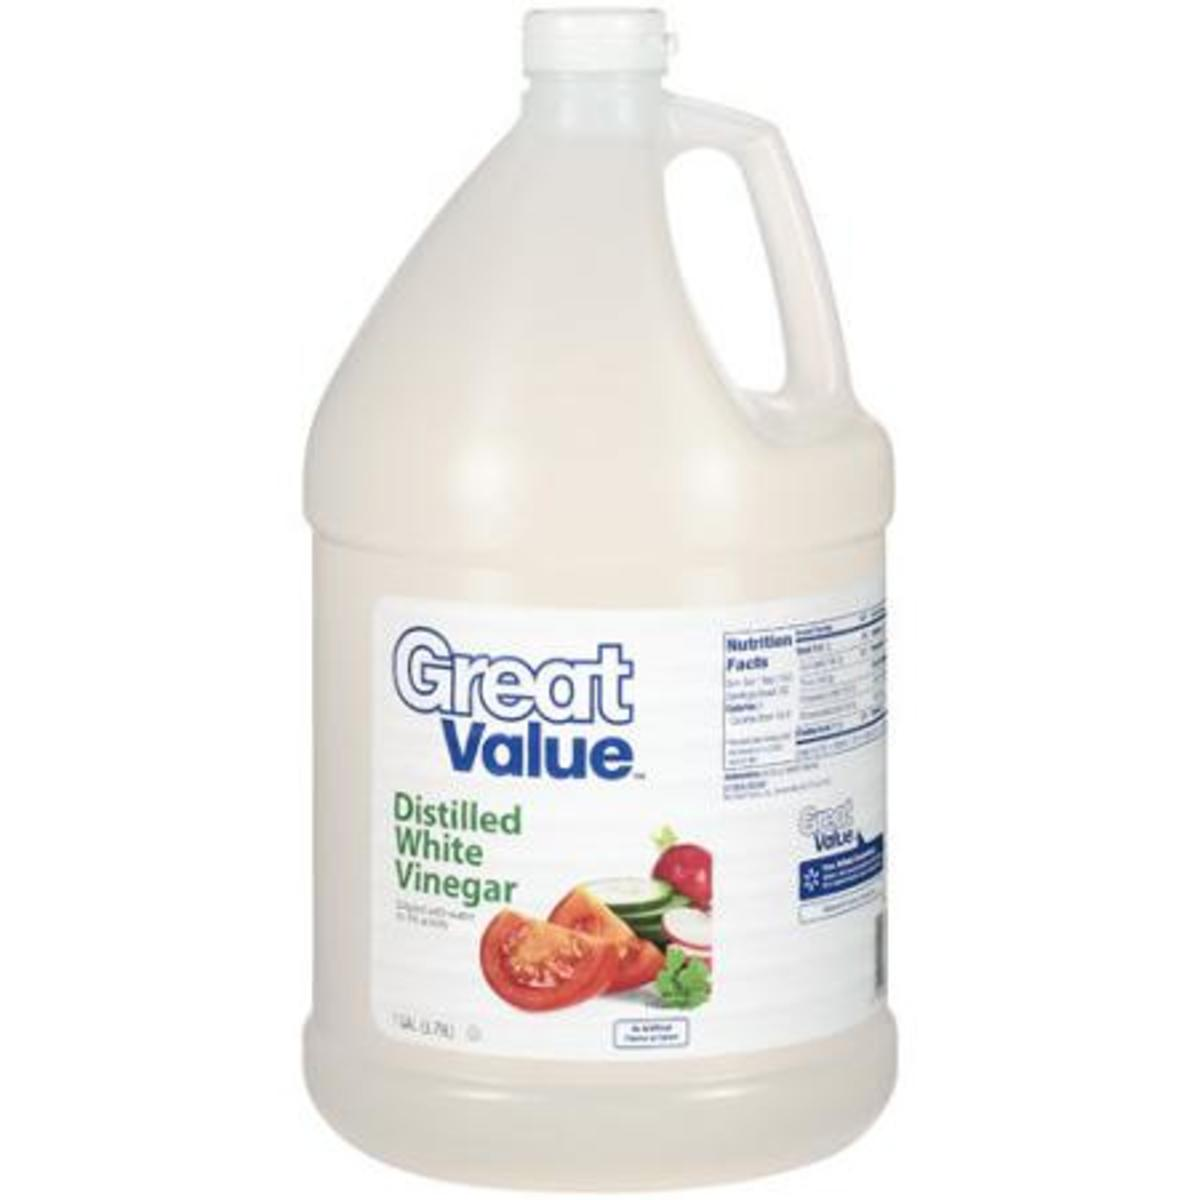 White vinegar is great upkeep for removing calcium deposits.